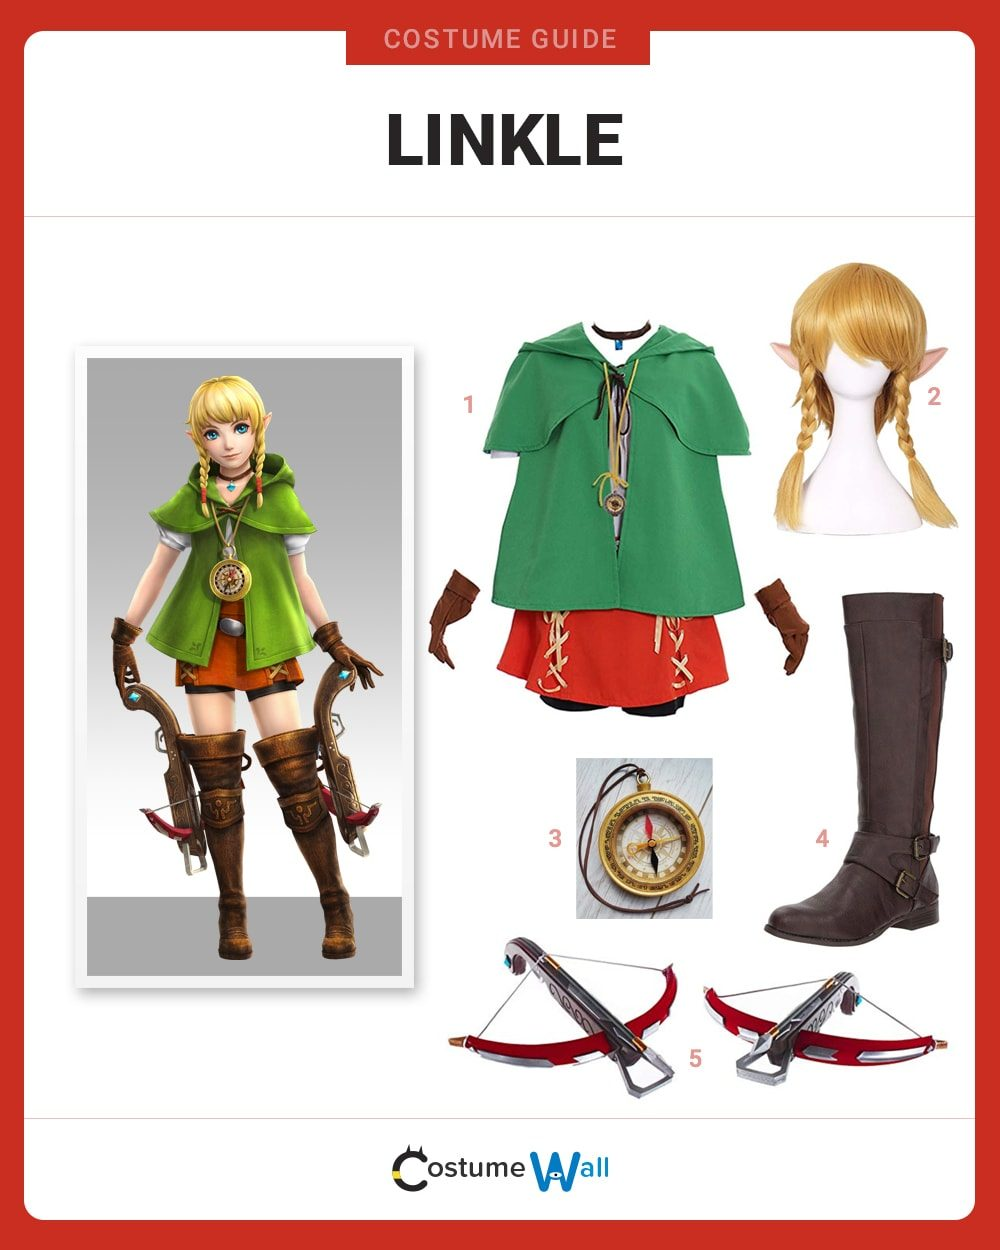 Linkle Costume Guide